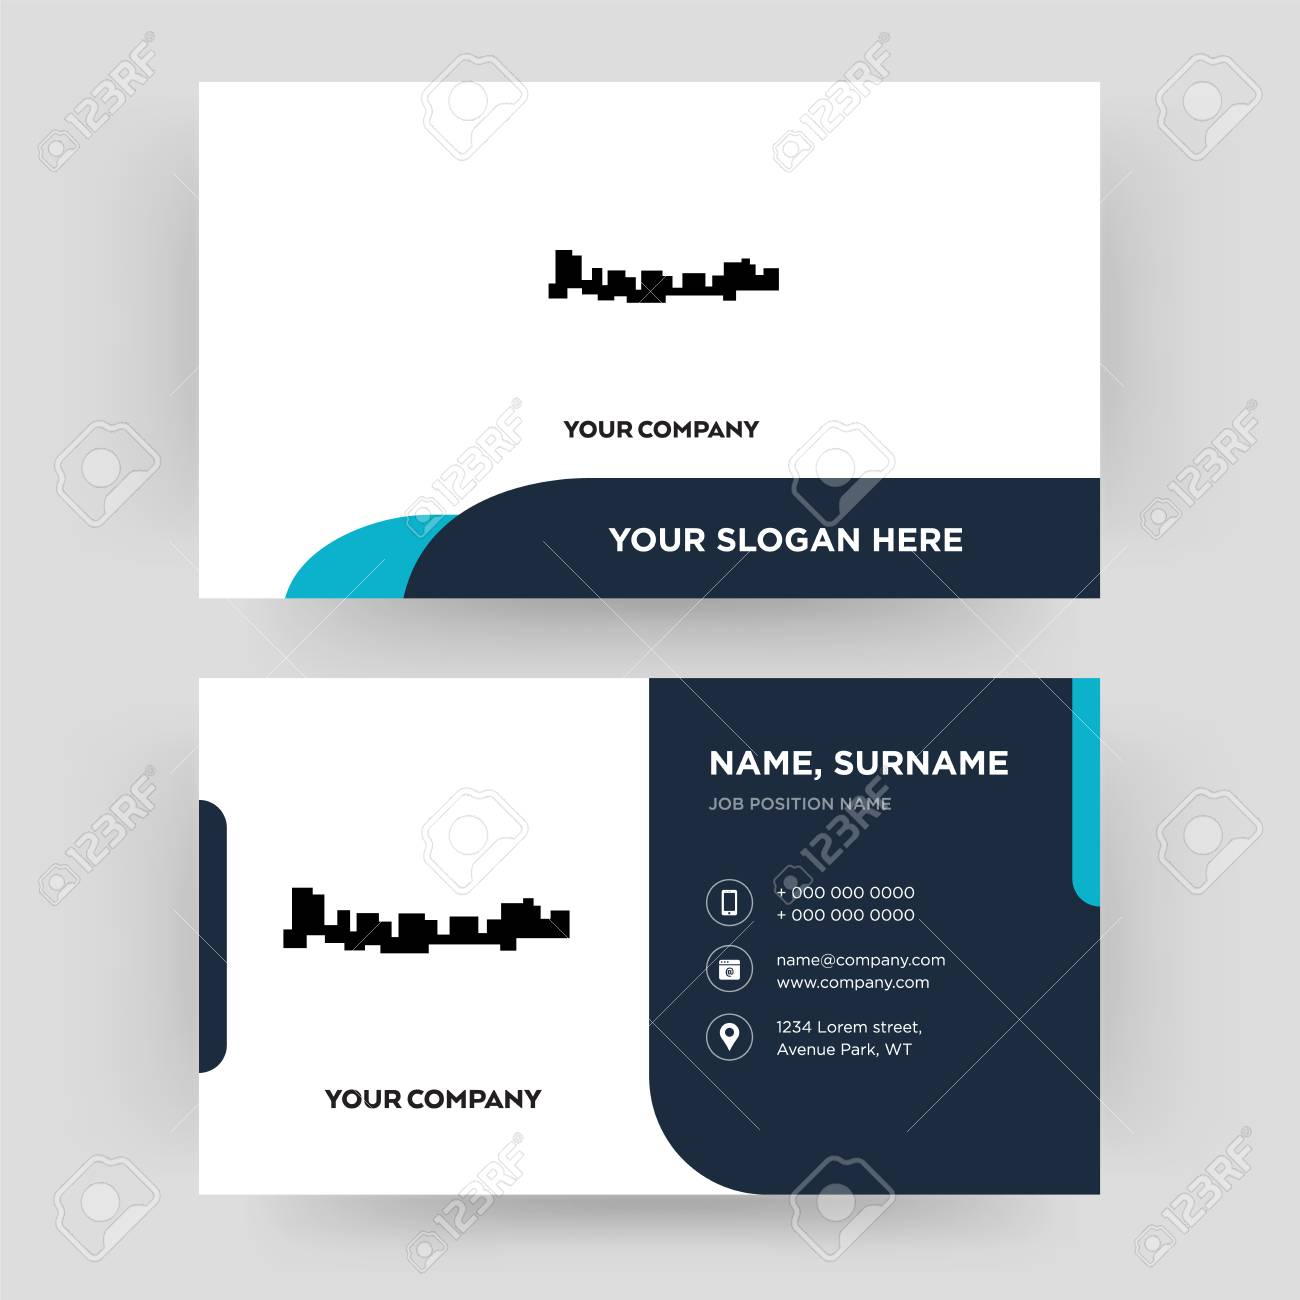 Jamaica Business Card Design Template Visiting For Your Company